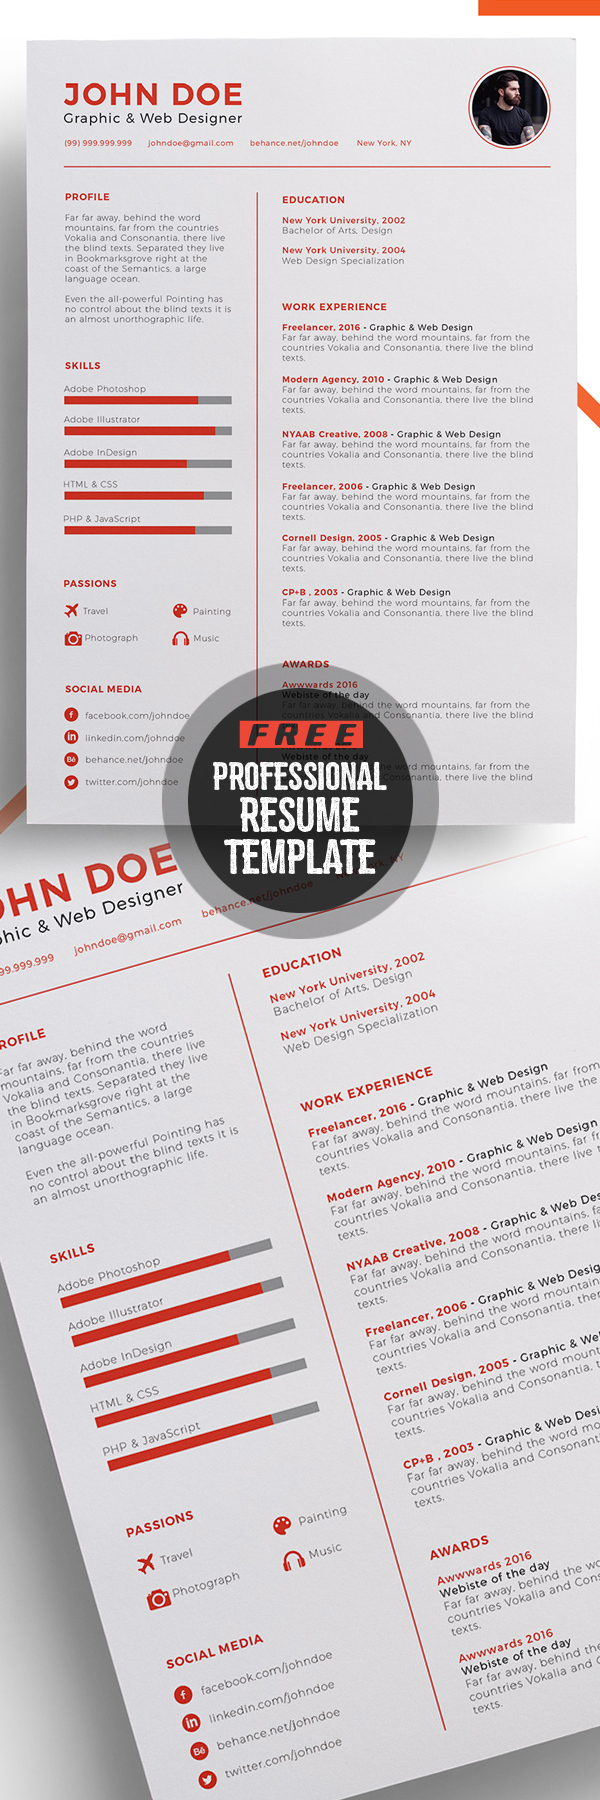 professional free resume template design - Free Creative Resume Templates Word